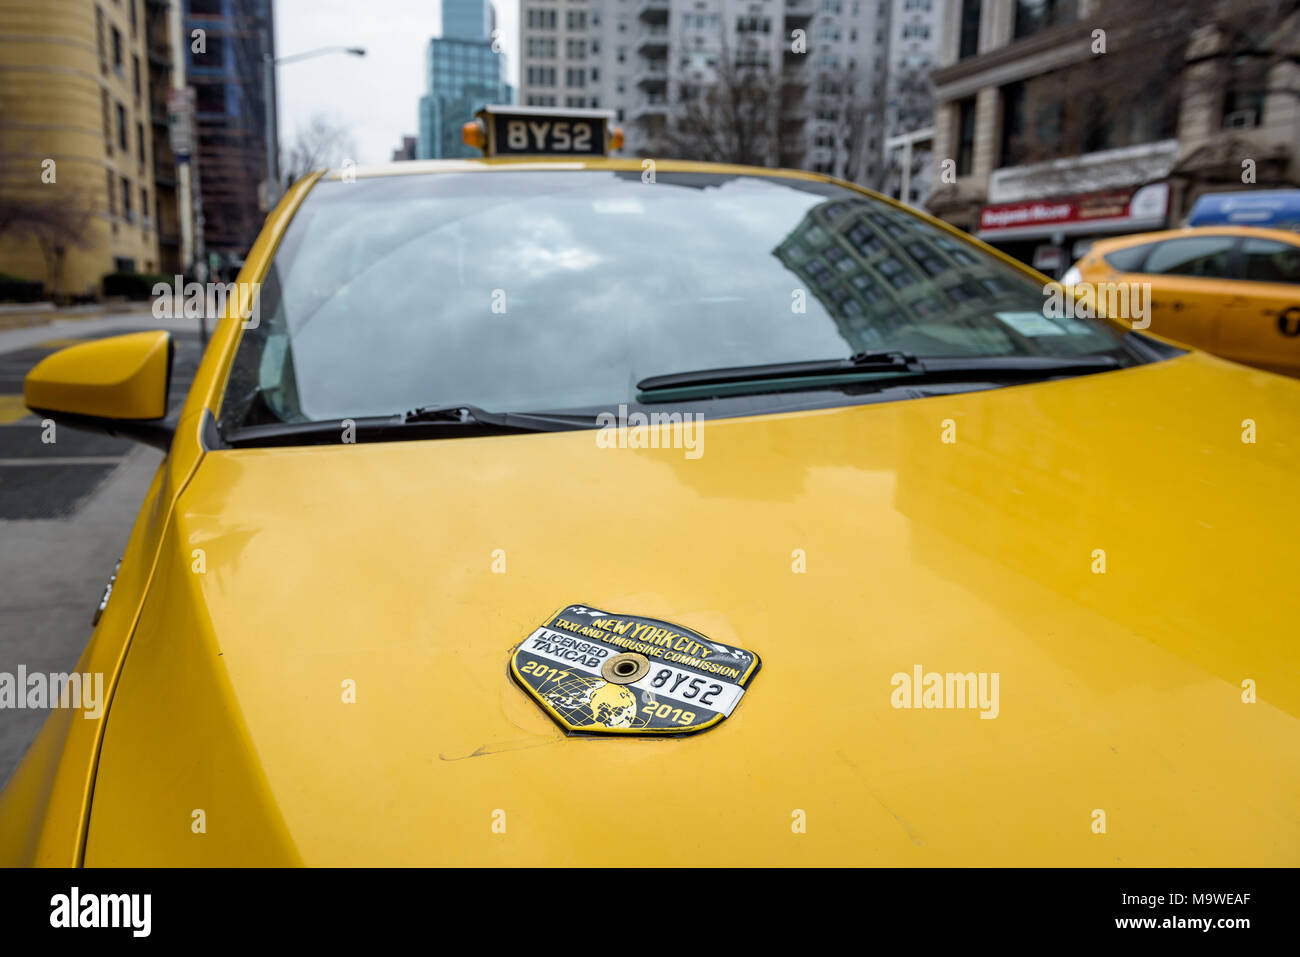 """New York, United States. 28th Mar, 2018. NYC Yellow Taxi - Taxi medallion owners and drivers gathered at the City Hall steps on March, 28, 2018; to say, """"Enough is enough."""" The industry is in chaos and tragedy has followed in the wake. NYC cabbies are being driven to the edge of financial ruin and despair as ride-hail apps like Uber and Lyft continue to take their customers. Last week, Nicanor Ochisor became the fourth driver suicide since November. Credit: Erik McGregor/Pacific Press/Alamy Live News Stock Photo"""